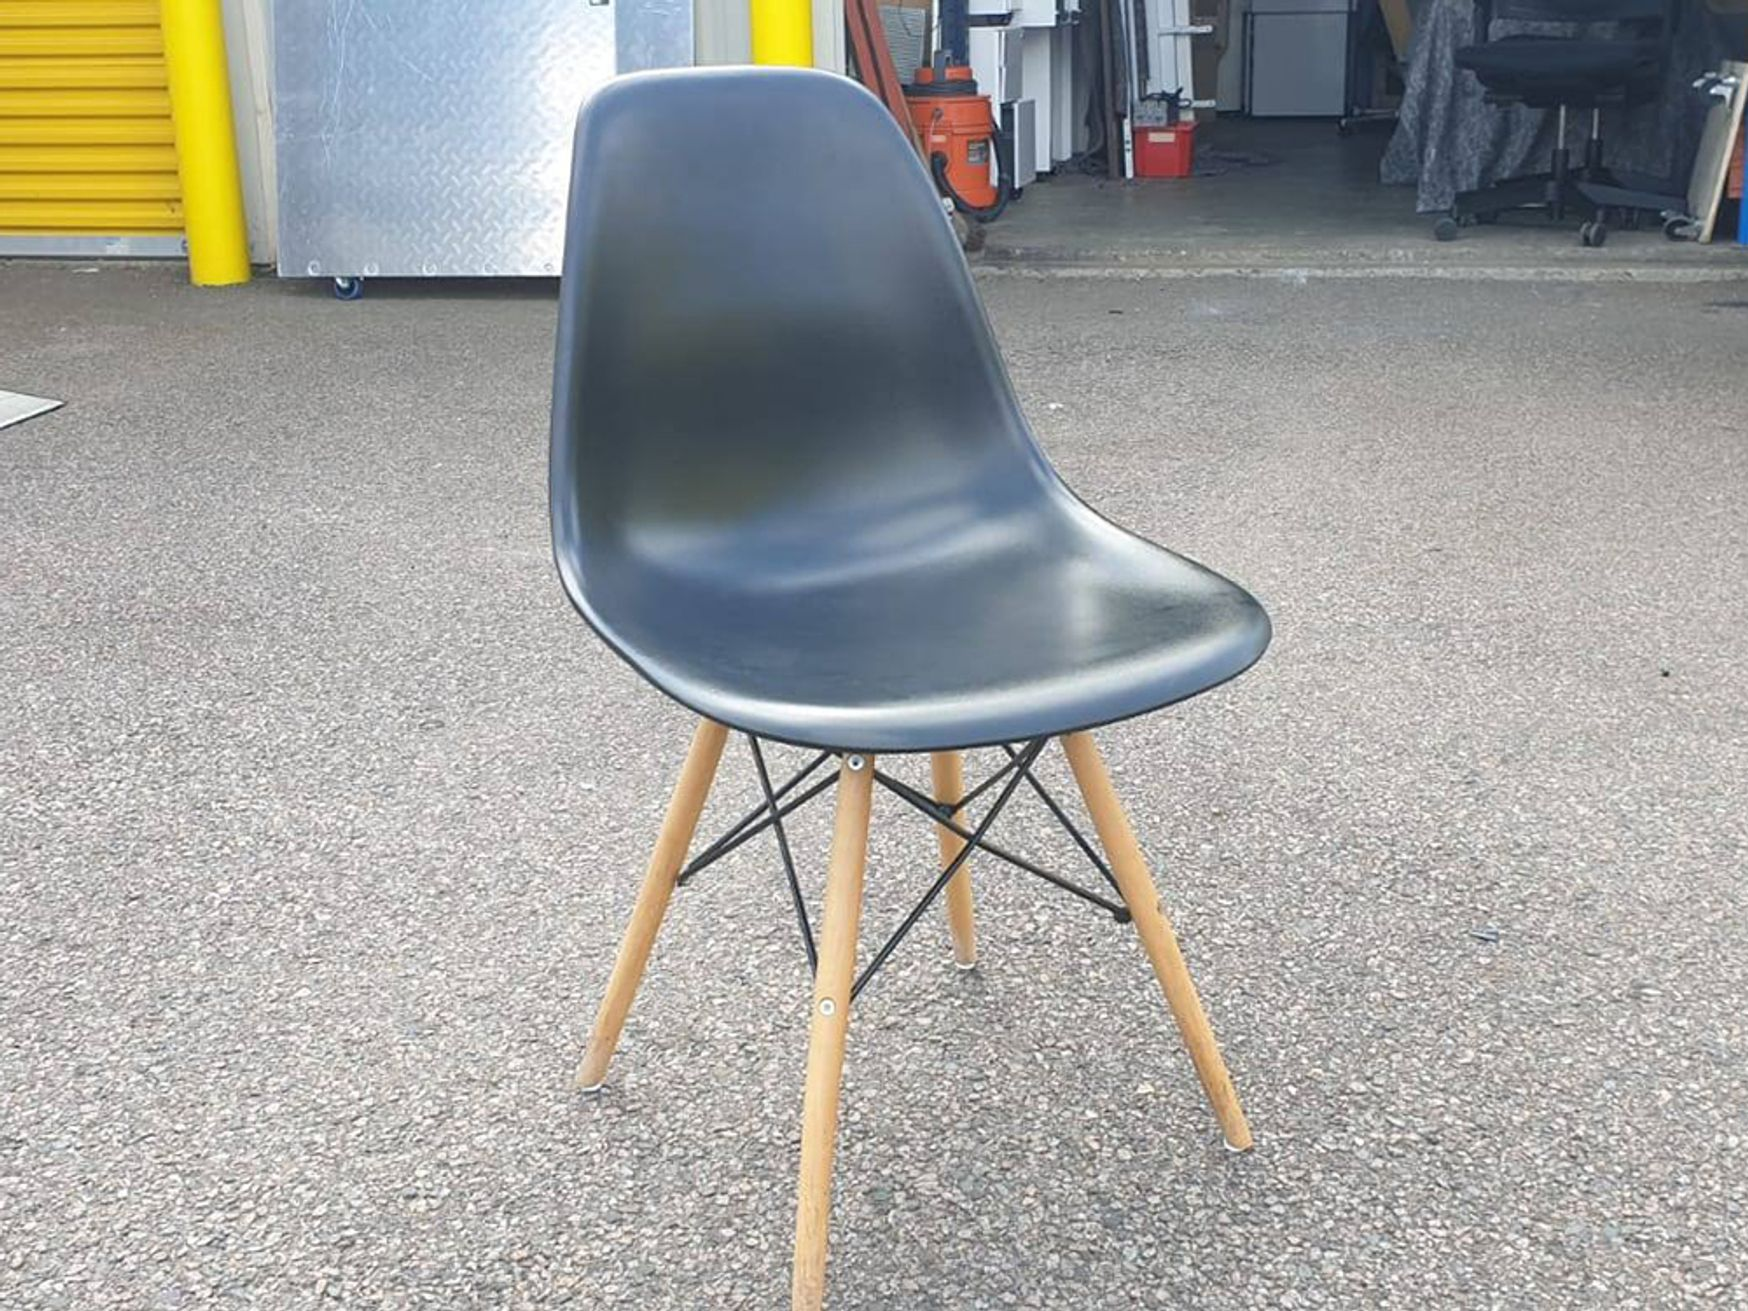 Used Eiffel Style Black Breakout Chairs with Wooden Legs